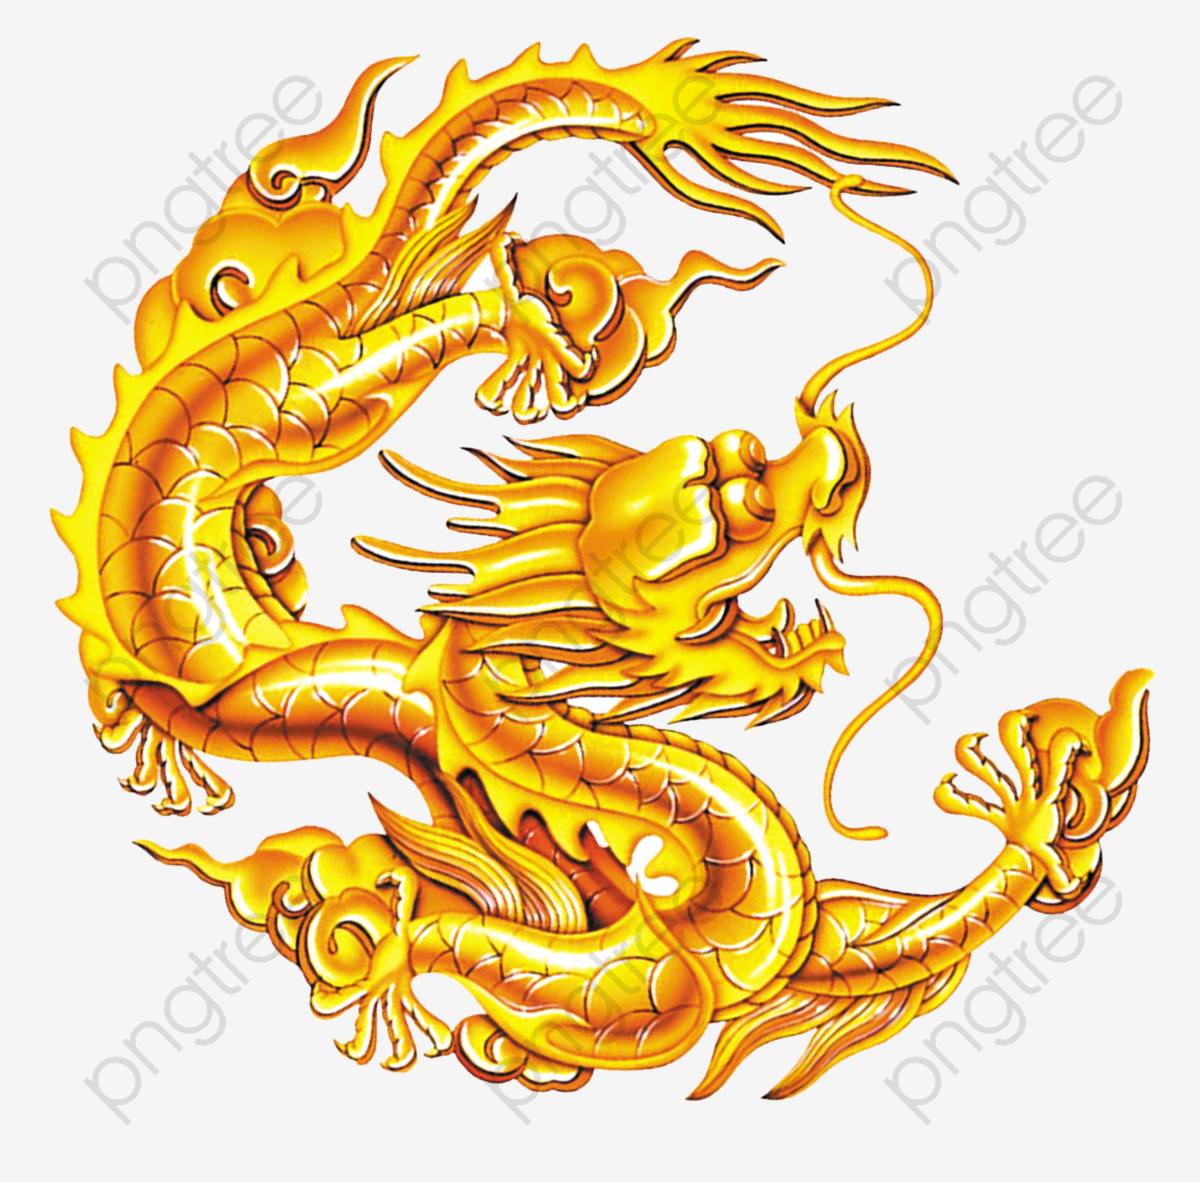 Chinese Dragon Golden Dragon, Chinese Clipart, Dragon Clipart.